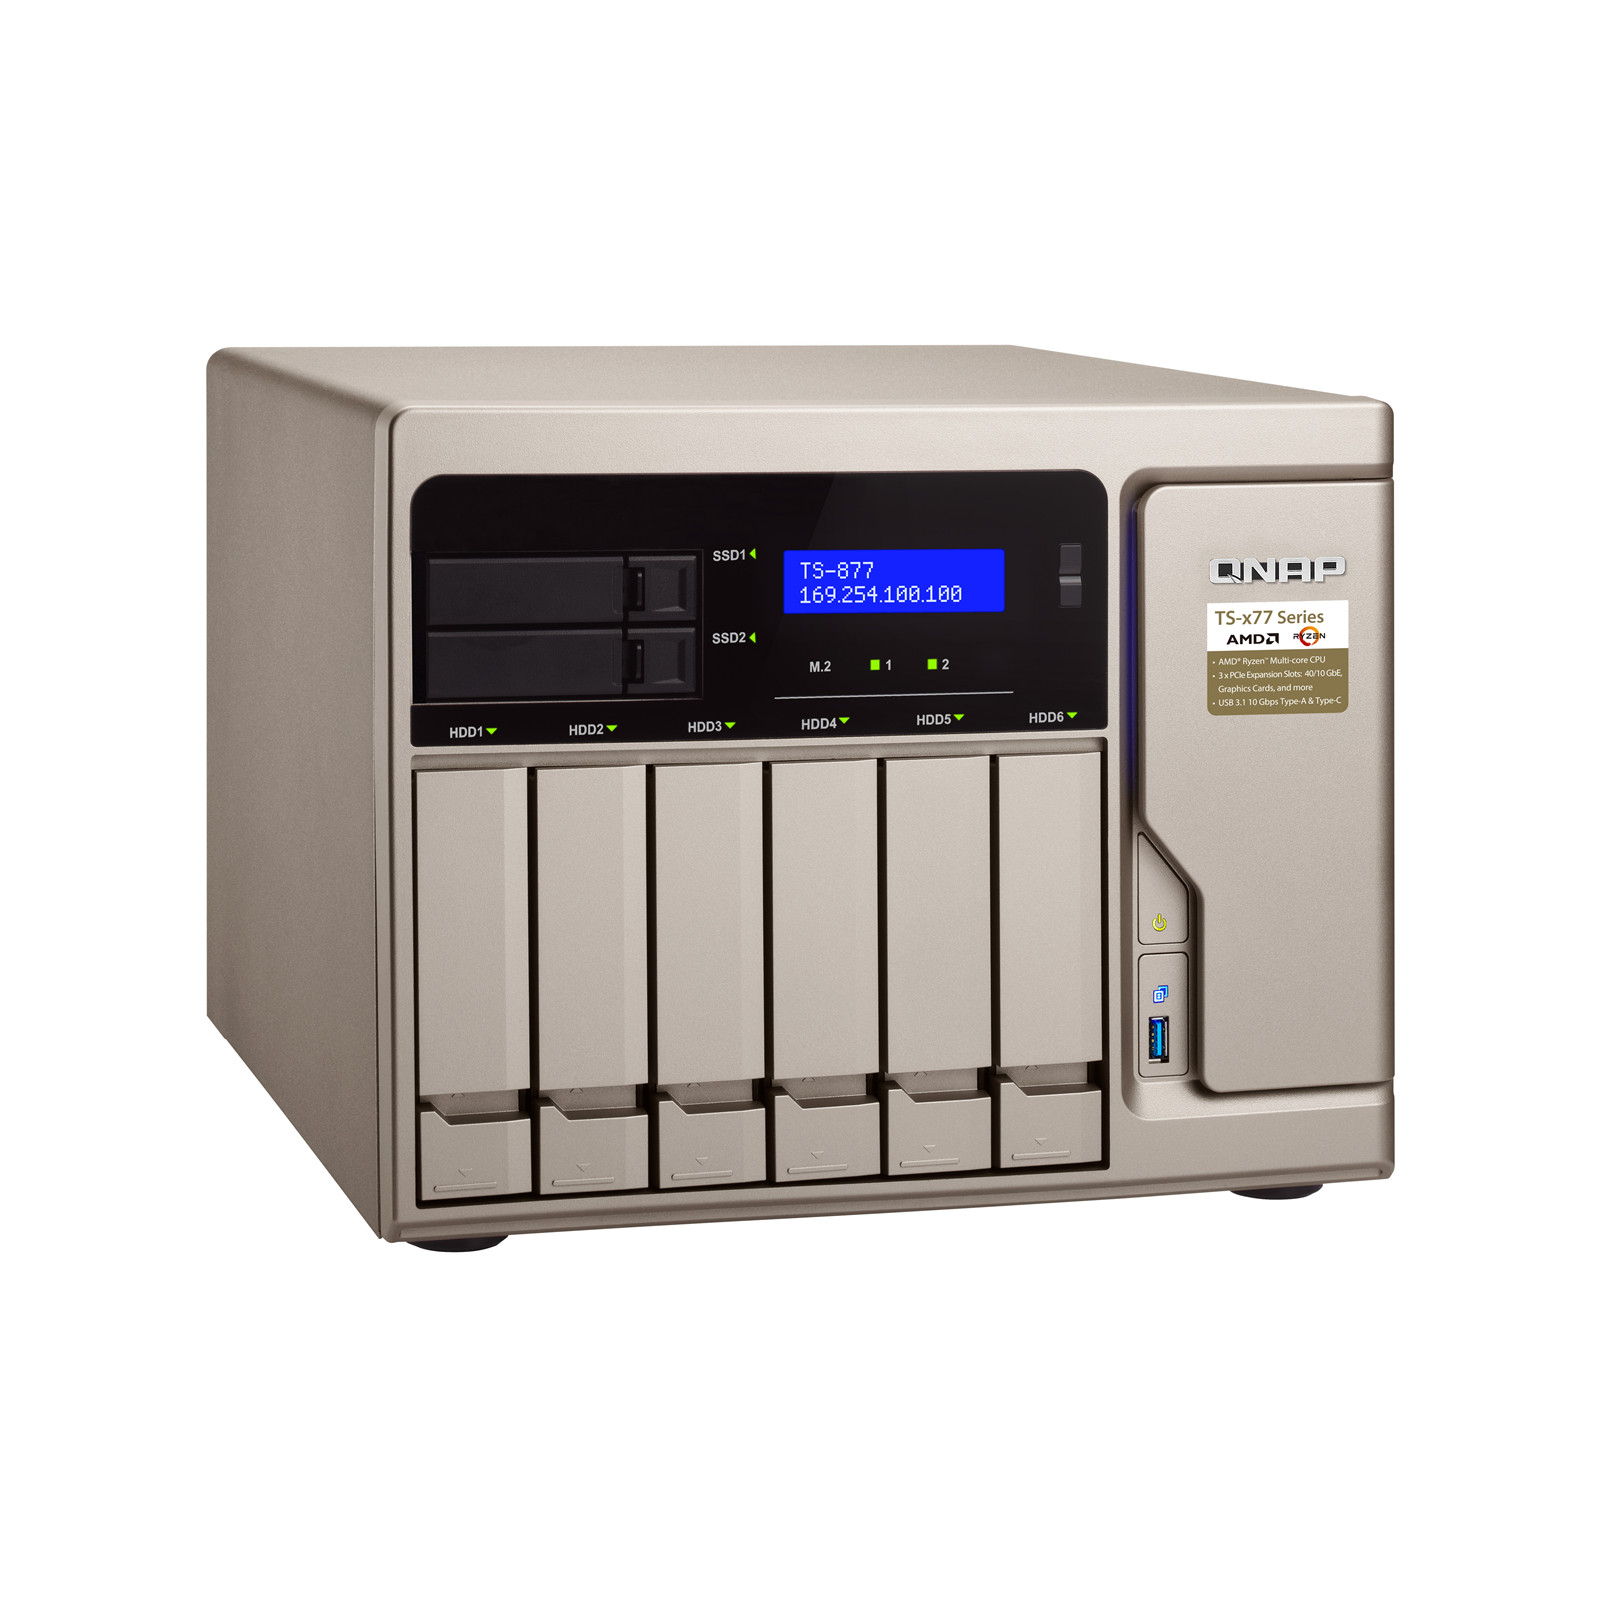 Buy the QNAP TS-877-1600-8G, Tower 8-Bay NAS Server, 6x 3 5